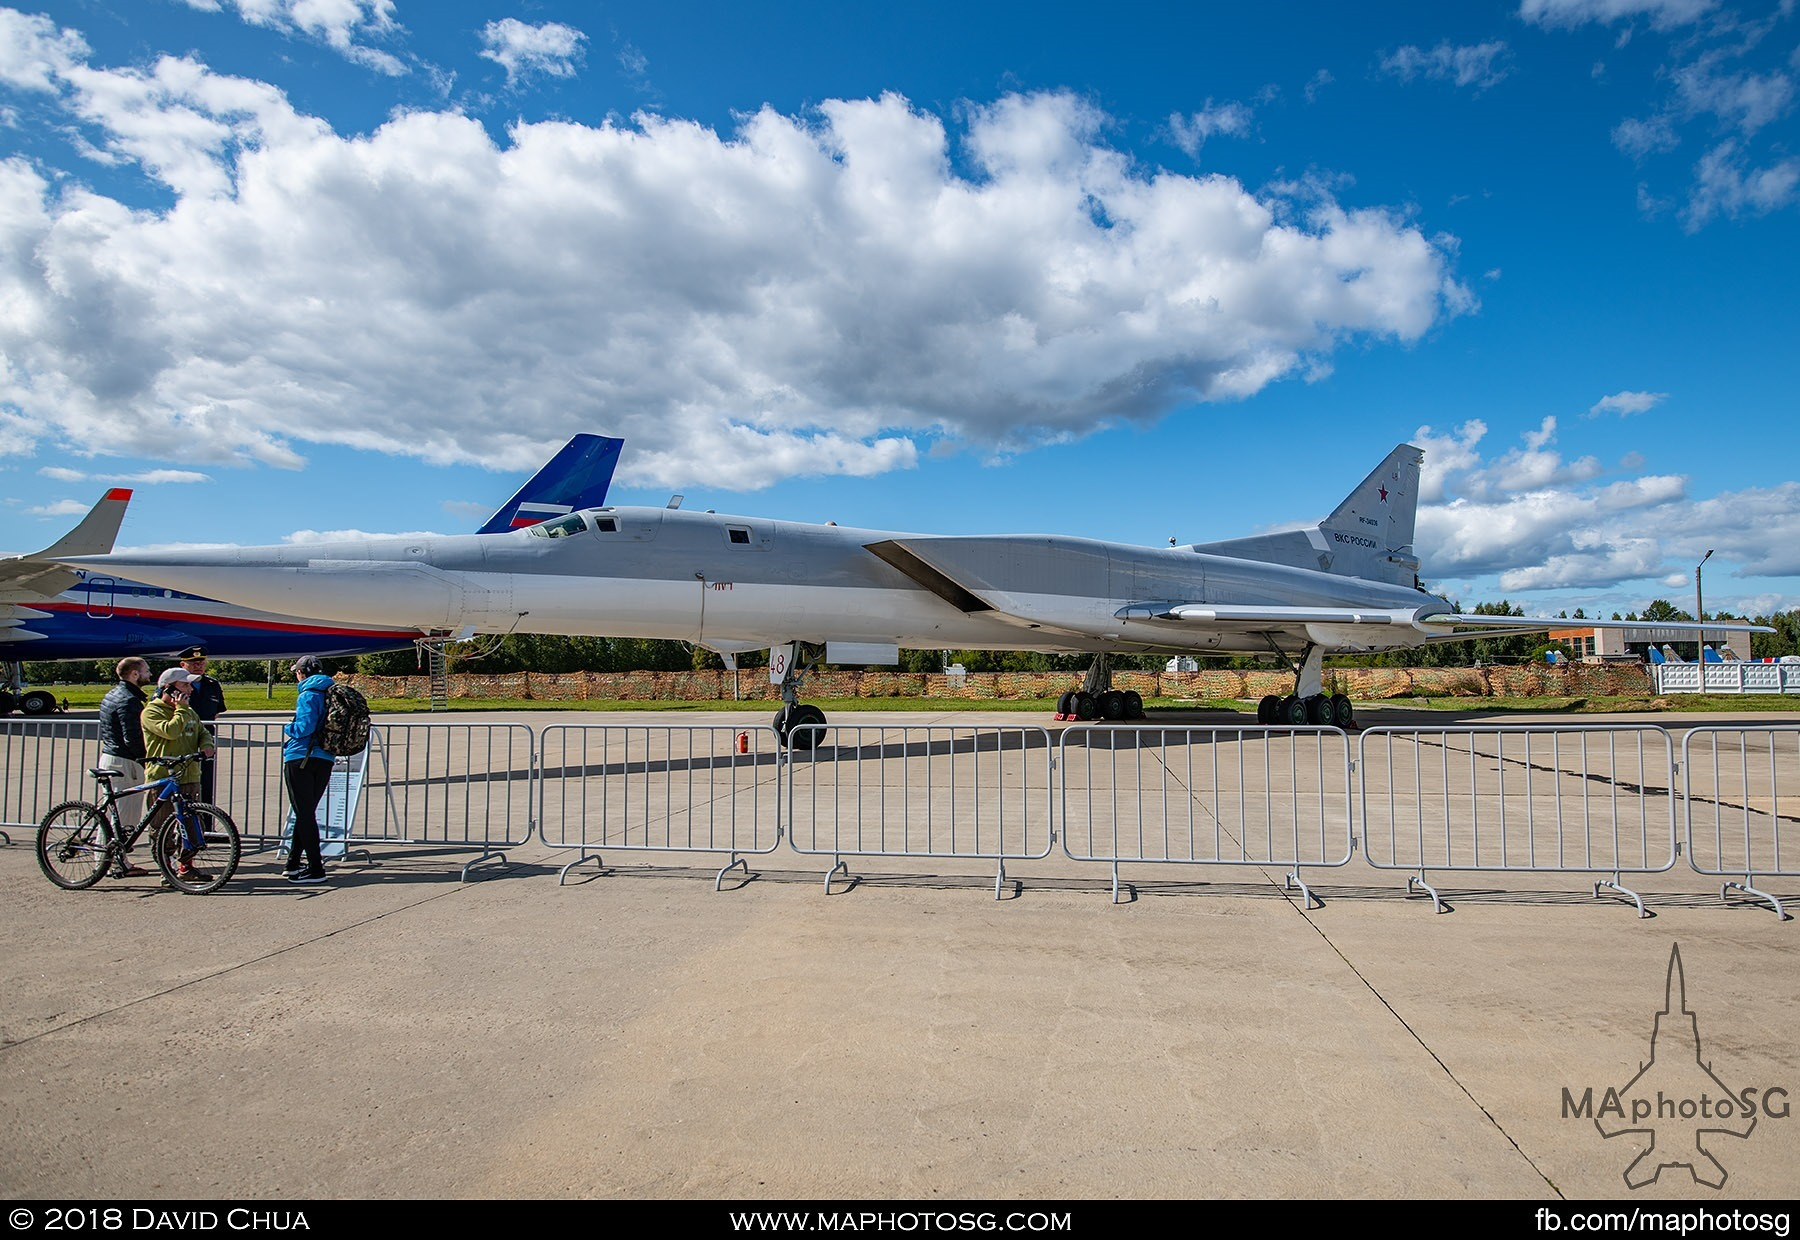 "22. Tupolev Tu-22m3 ""Backfire"" swing wing strategic bomber in its latest upgraded form"